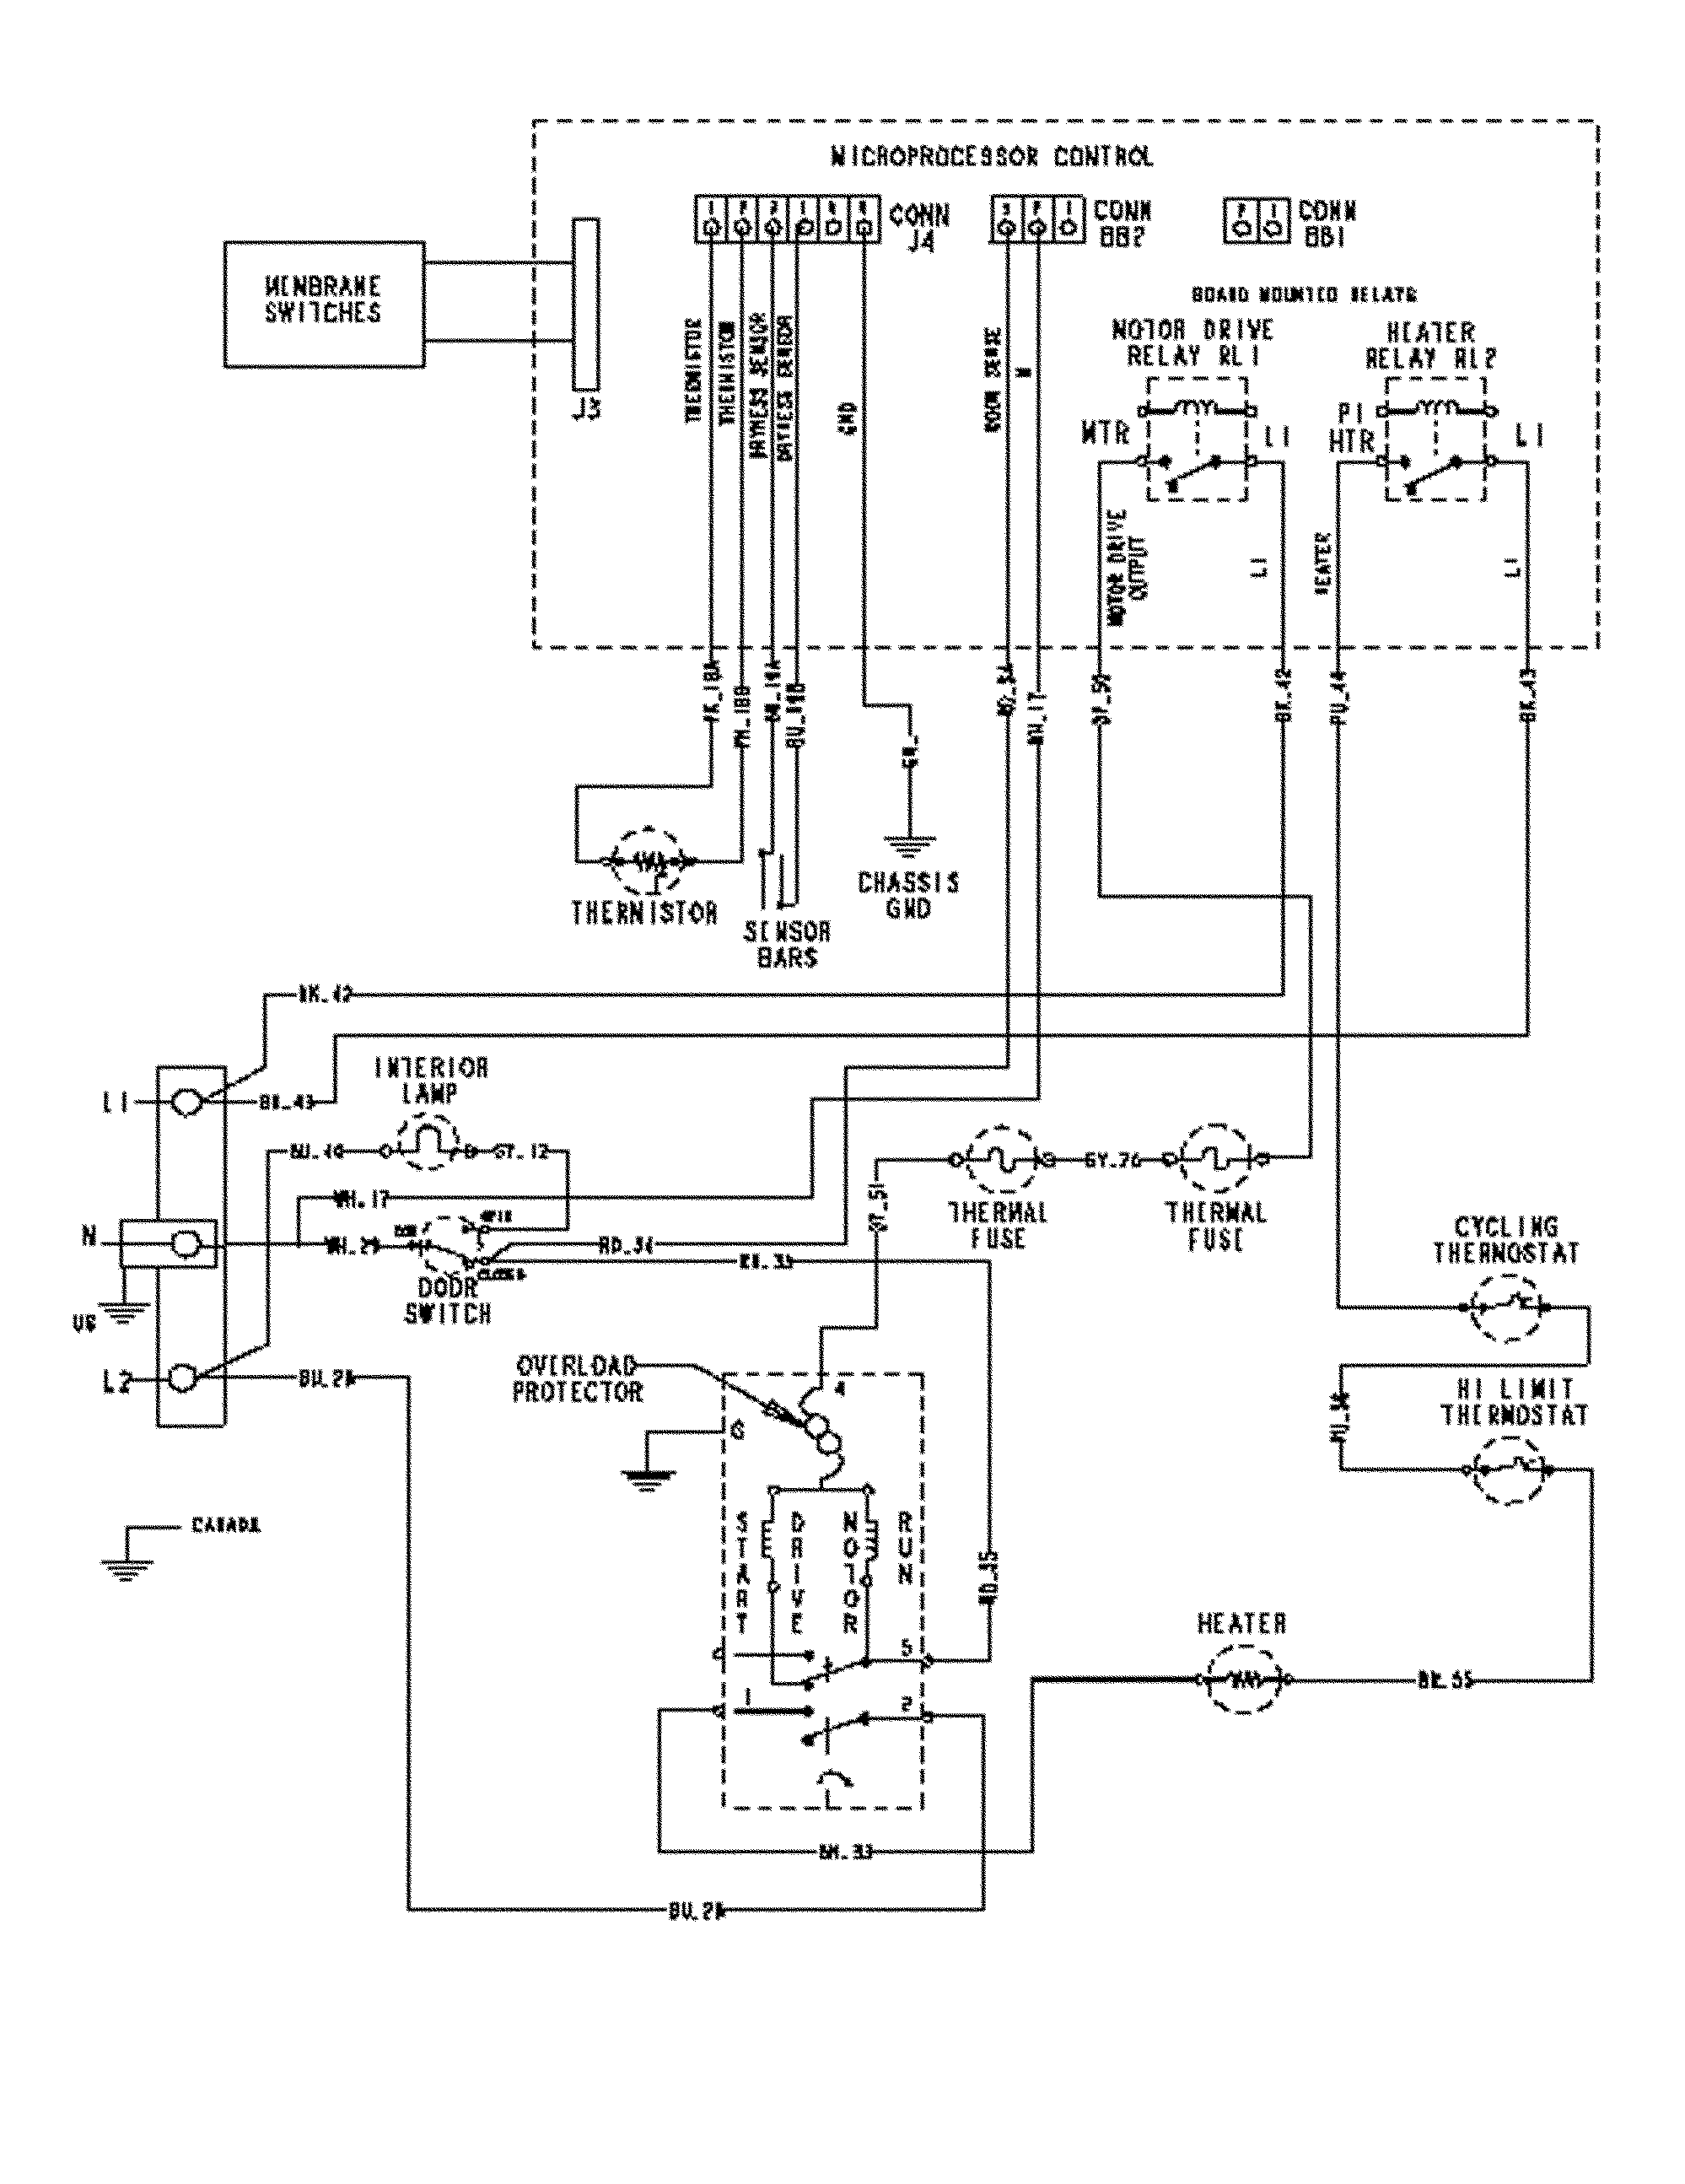 Maytag Wiring Diagram Dryer from wiringall.com